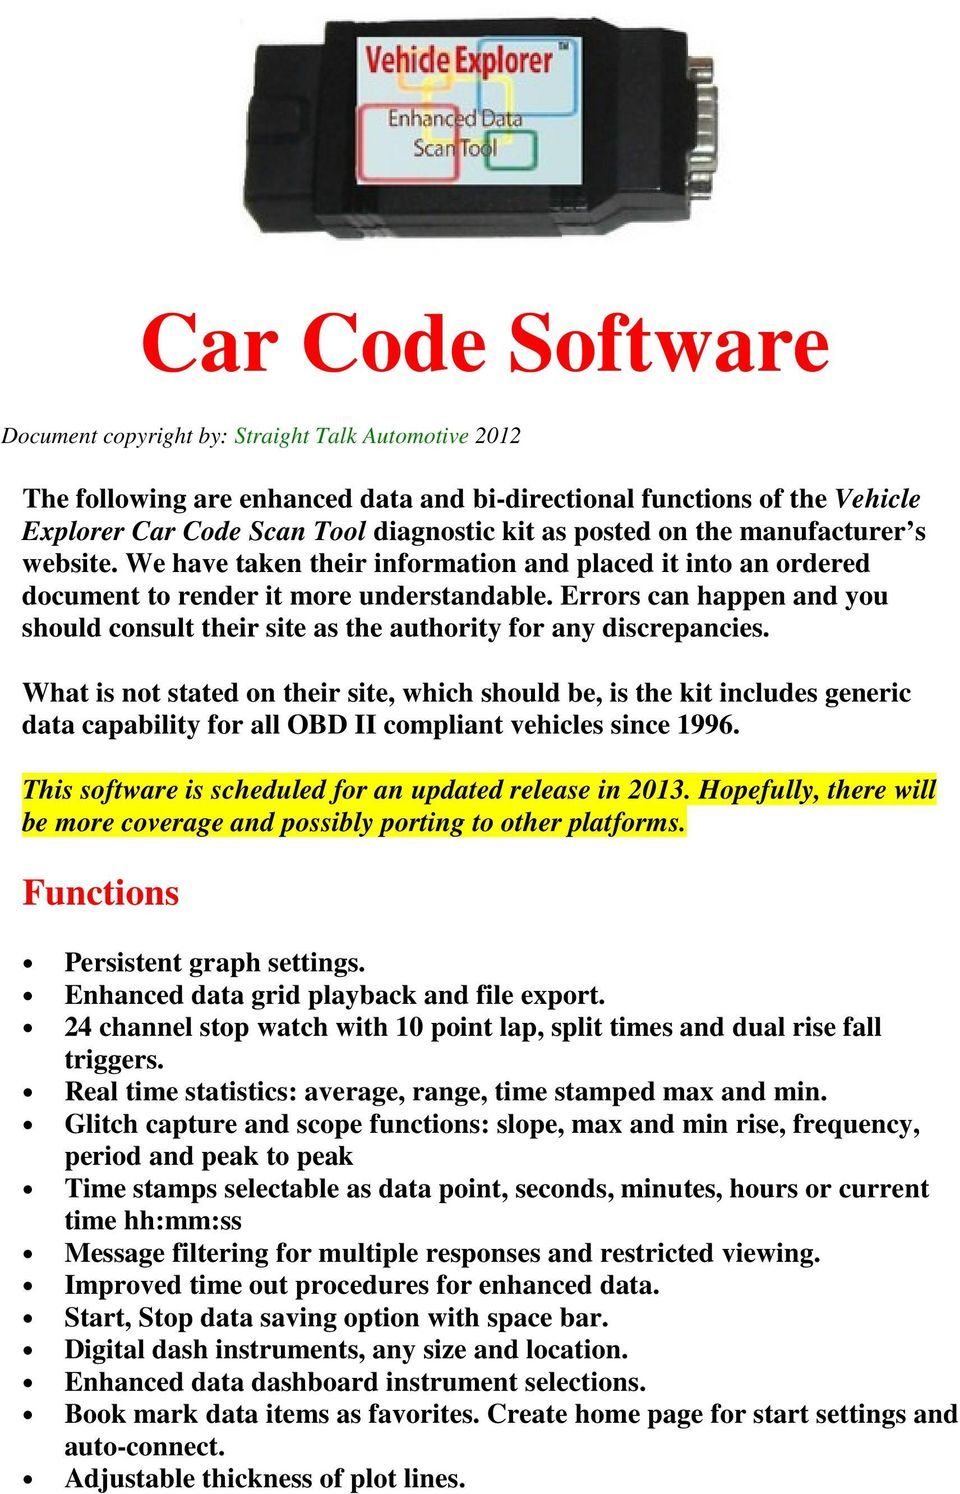 Car Code Software The Following Are Enhanced Data And Bi Directional 2000 Dodge Durango Evaporative System Monitor Schematic Diagram Errors Can Happen You Should Consult Their Site As Authority For Any Discrepancies